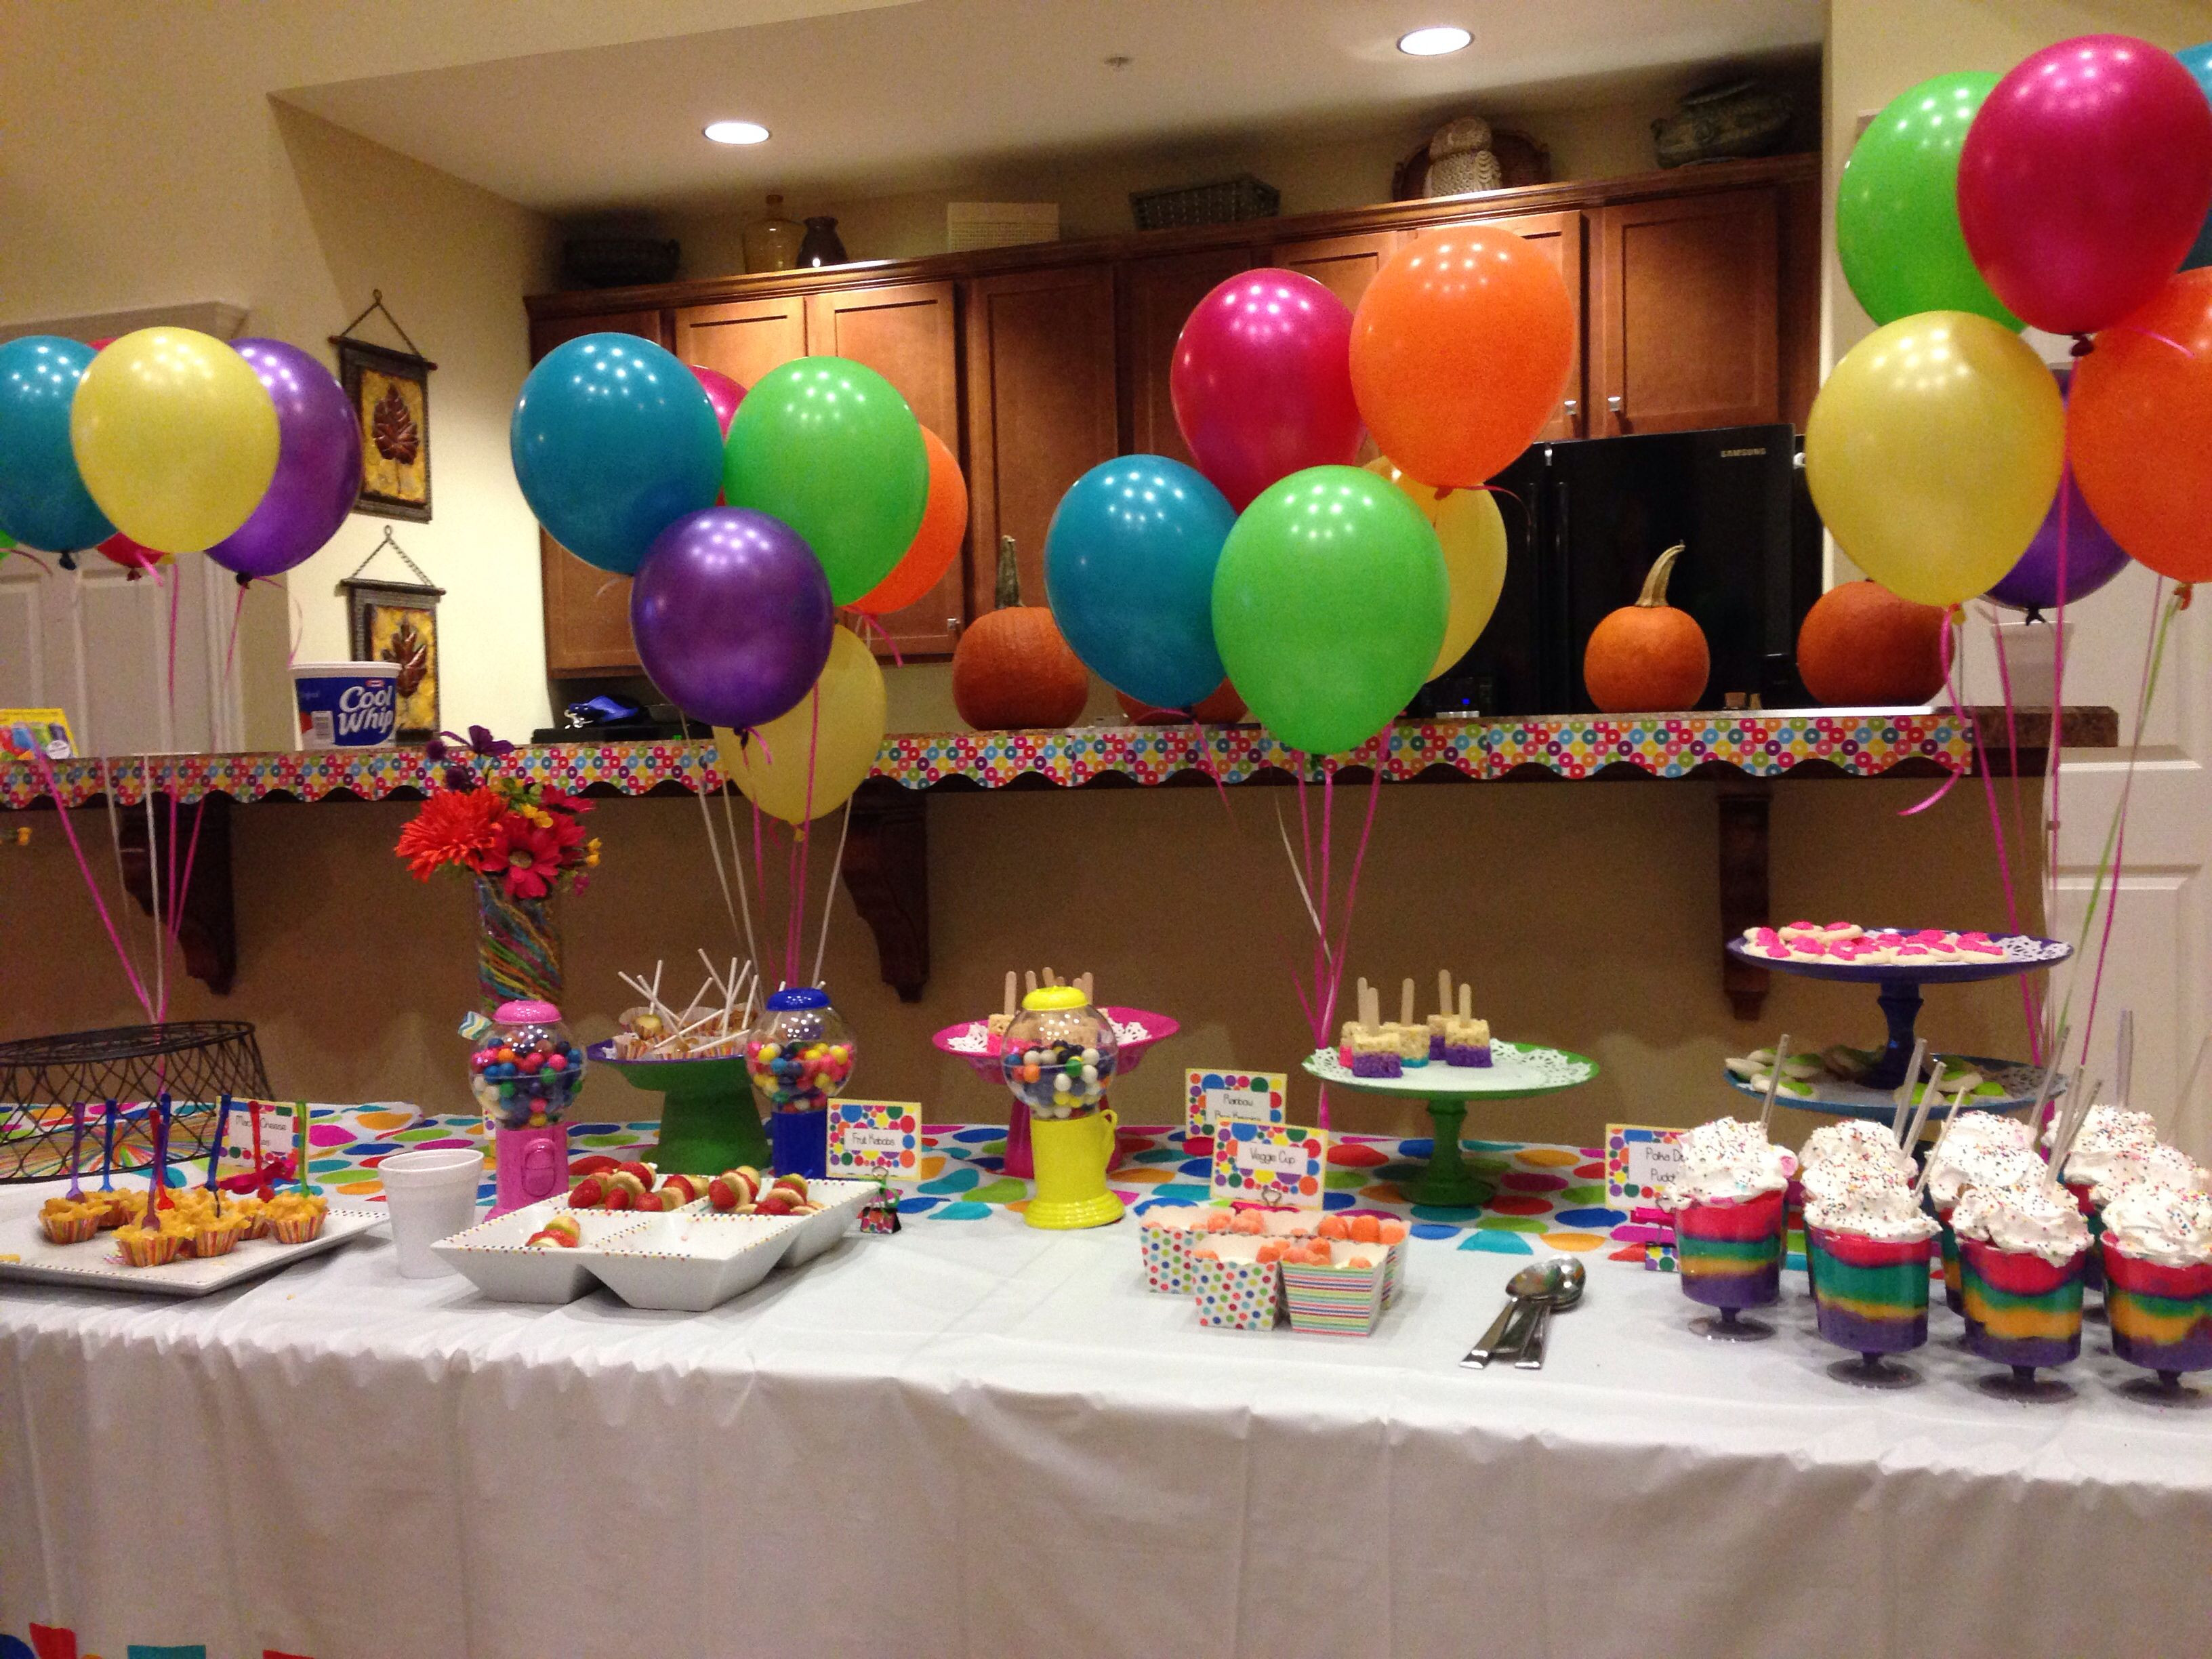 Best ideas about Two Yr Old Birthday Party Ideas . Save or Pin 4 Year Old Birthday Party Ideas Party Ideas for Kids Now.